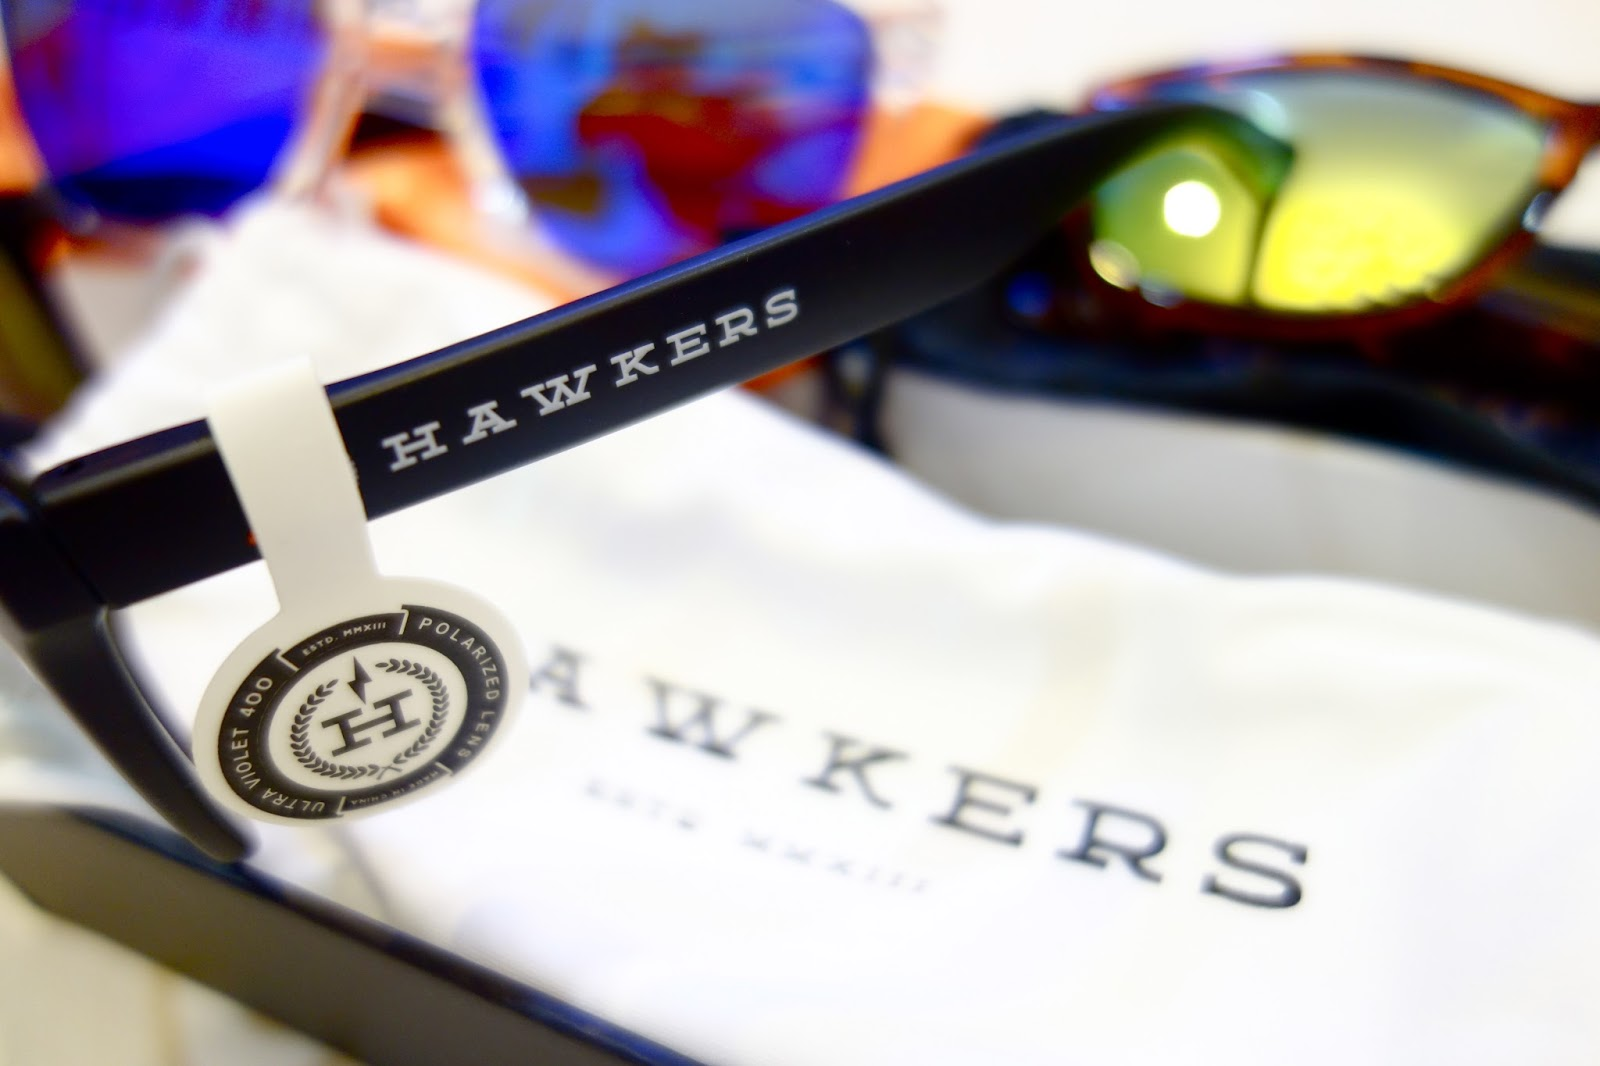 2d537fcc61 The logo and branding present in both arms. Other celebrities have donned Hawkers  Co. sunglasses ...